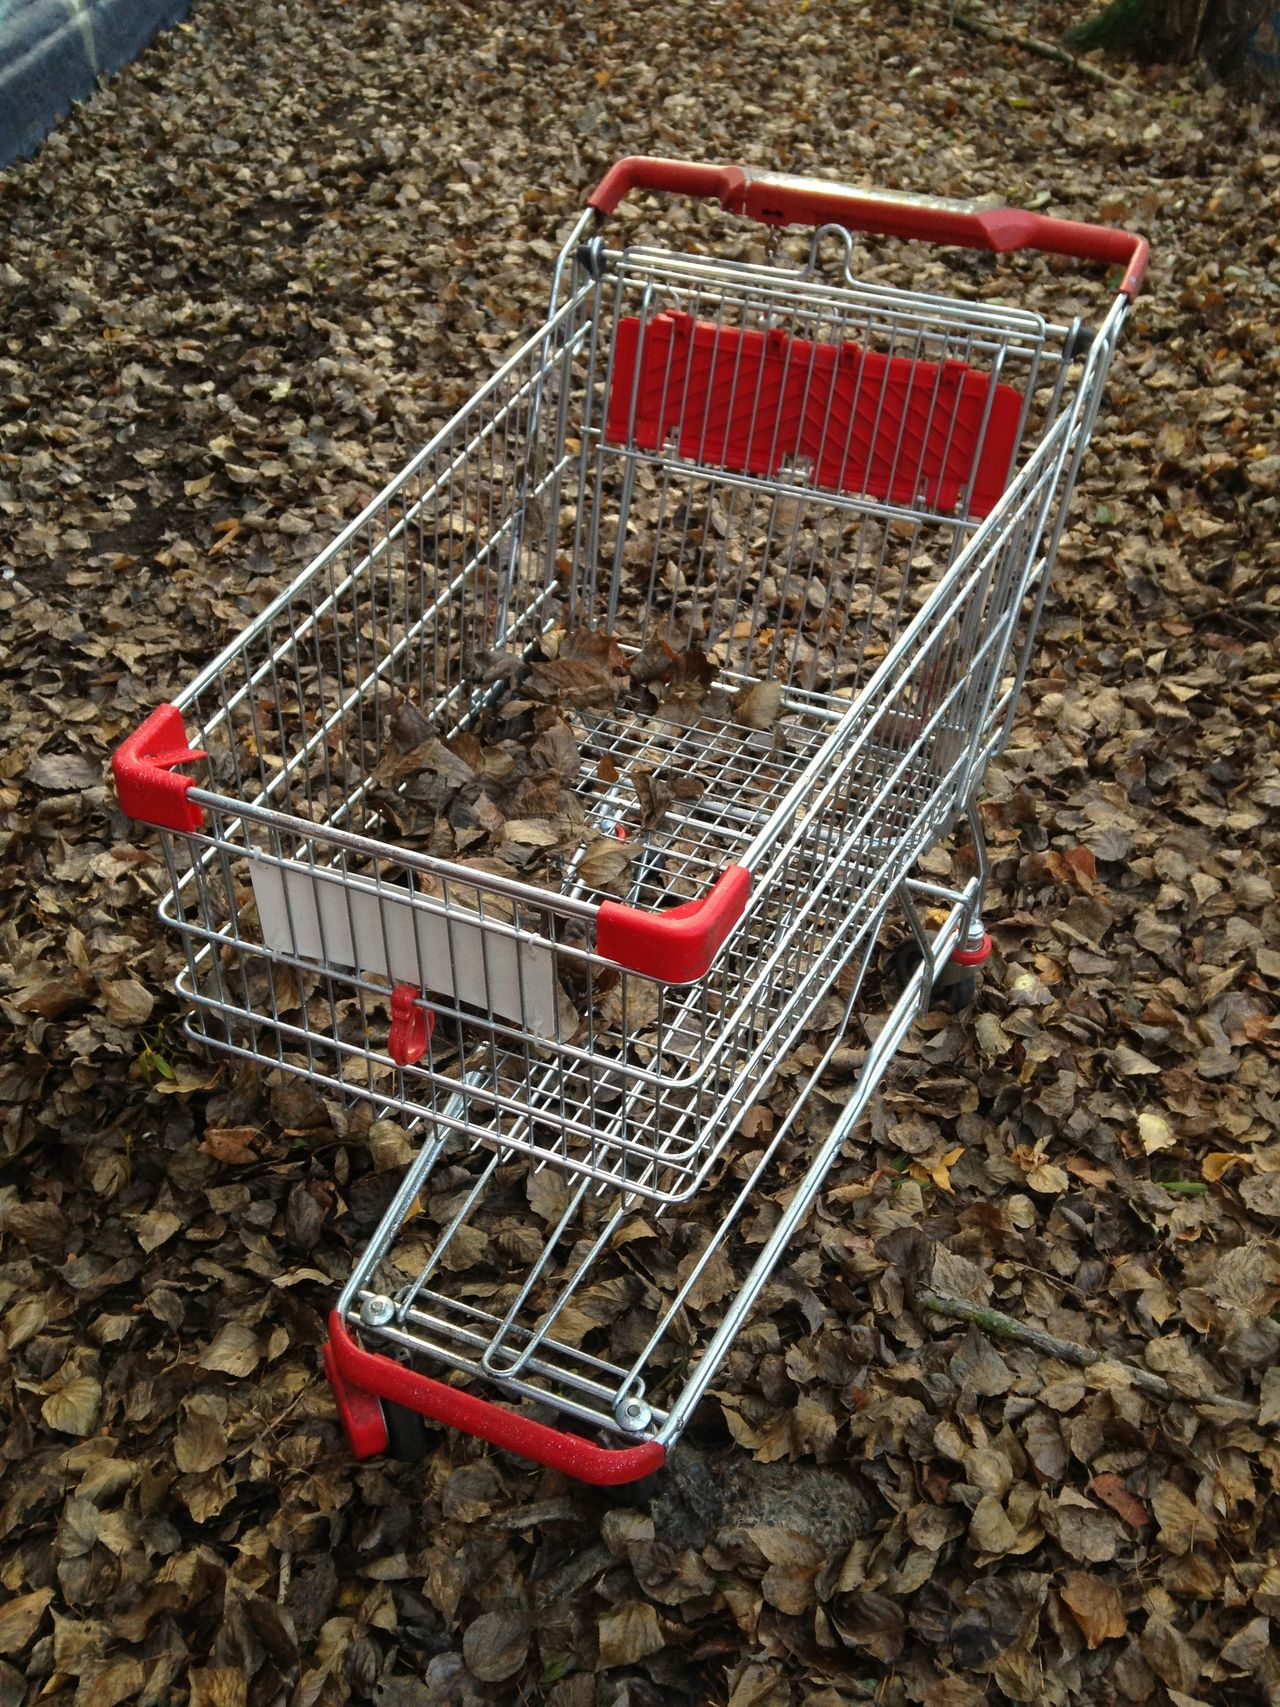 Abandoned Autumn Autumn Leaves Day Discarded Fall Leaves No People Outdoors Shopping Cart Shopping Trolley